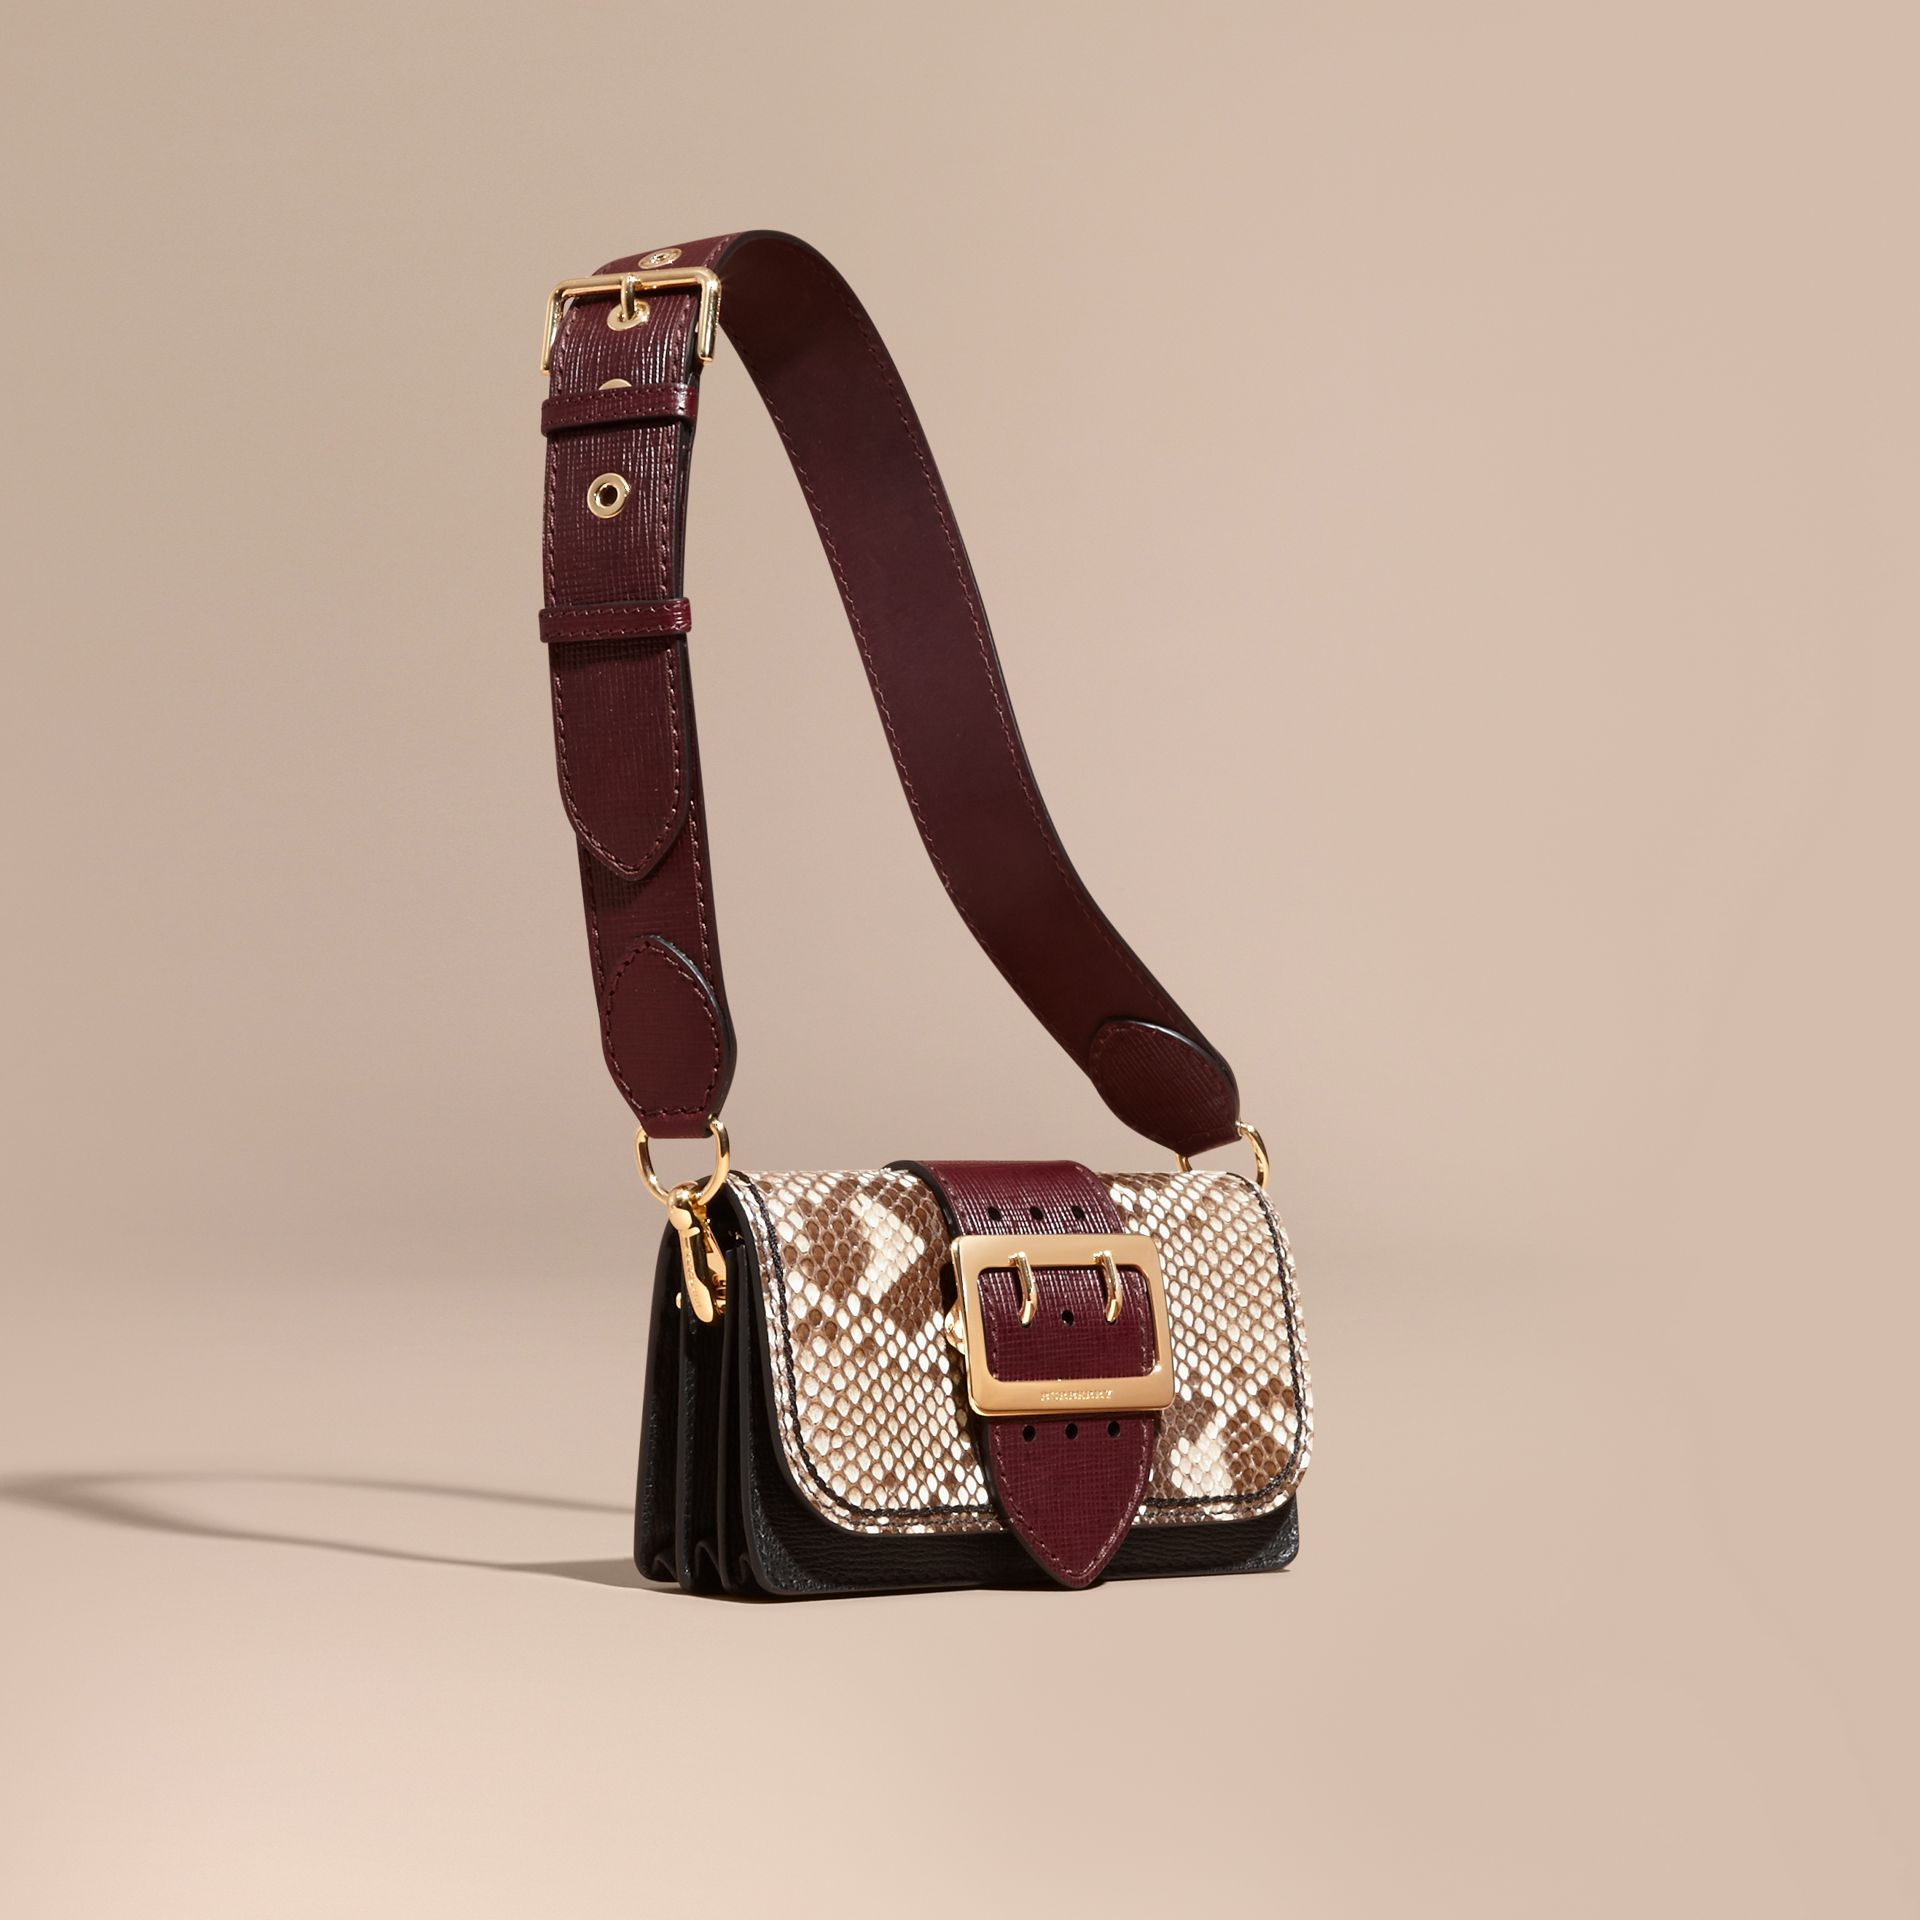 Natural / burgundy The Small Buckle Bag in Python and Leather - gallery image 1